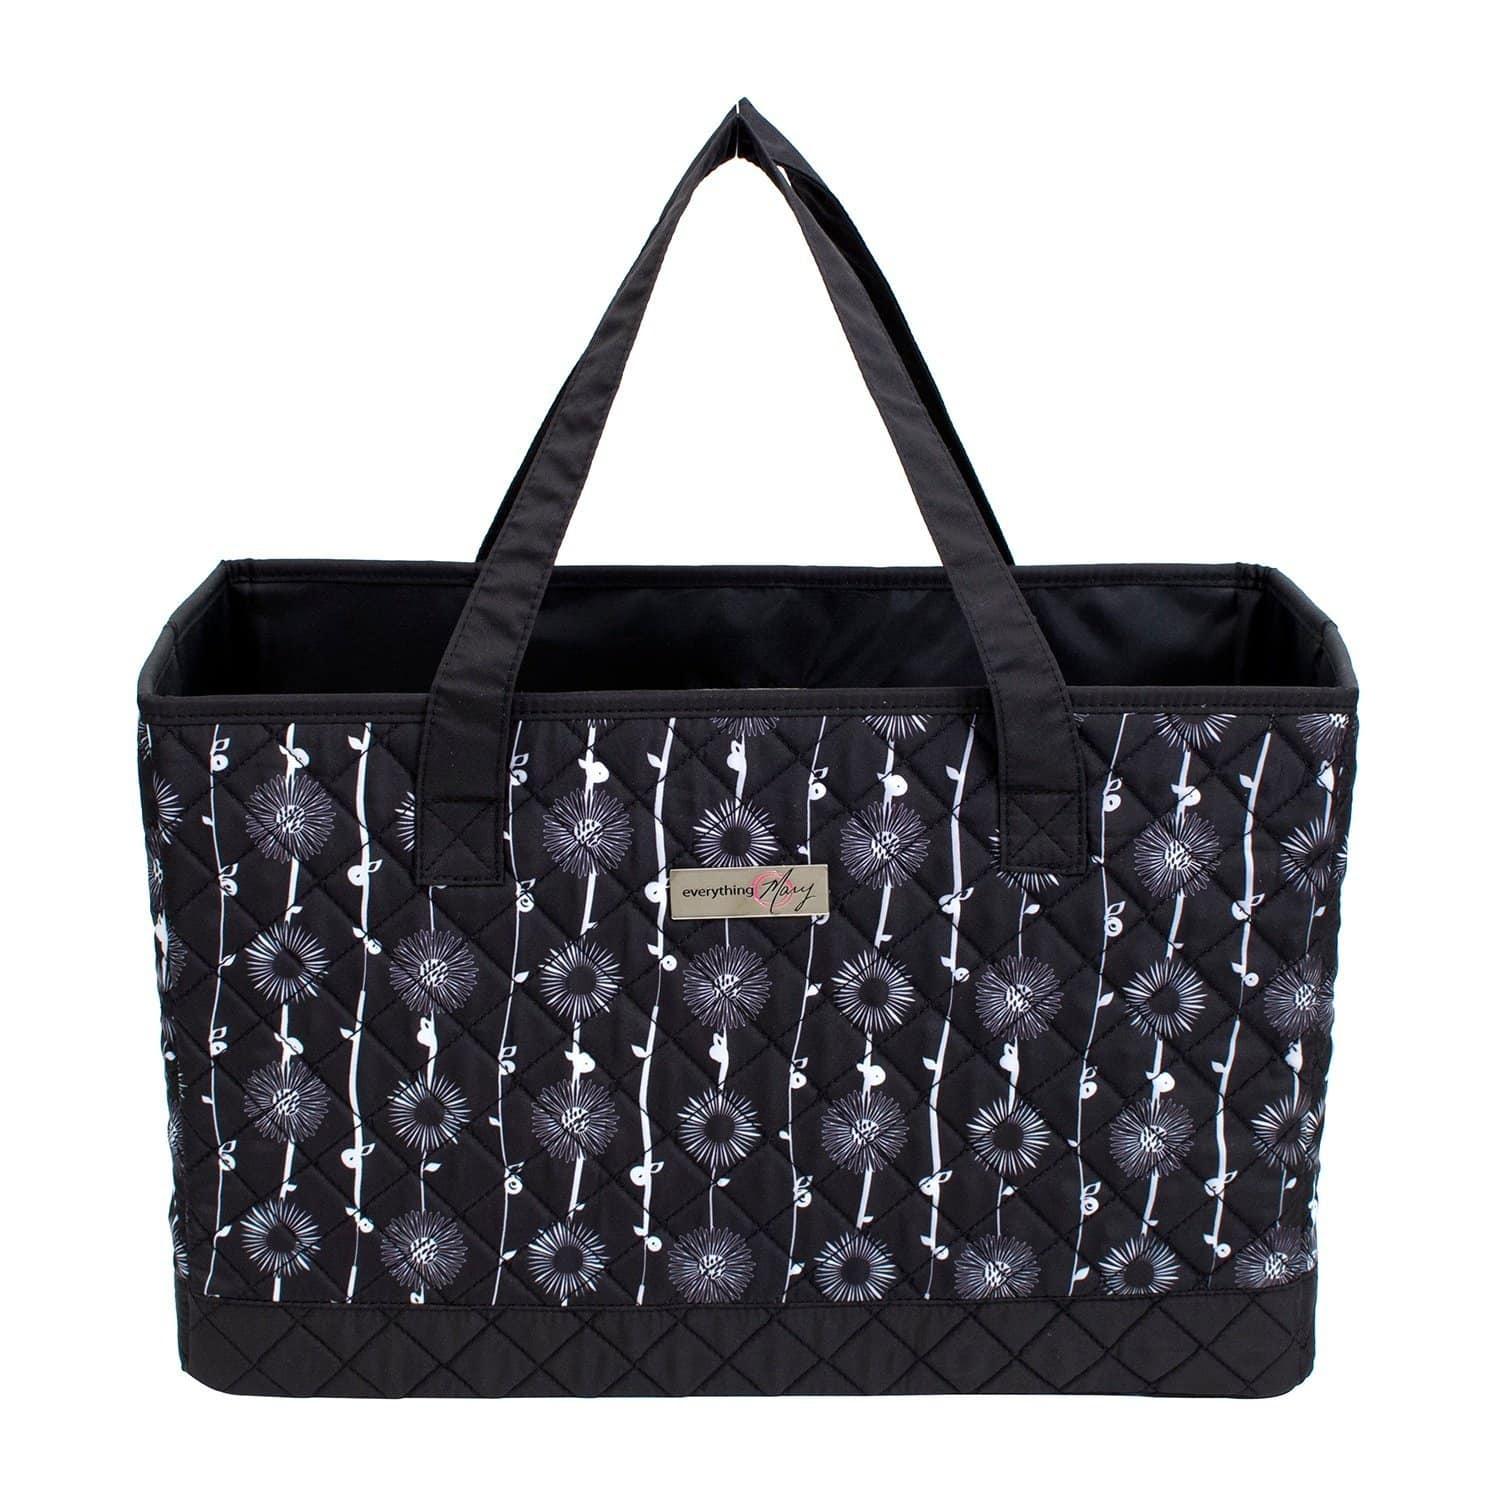 Large Sewing Machine Tote Bag Carrying Storage Cover Case Bags Travel Handbag